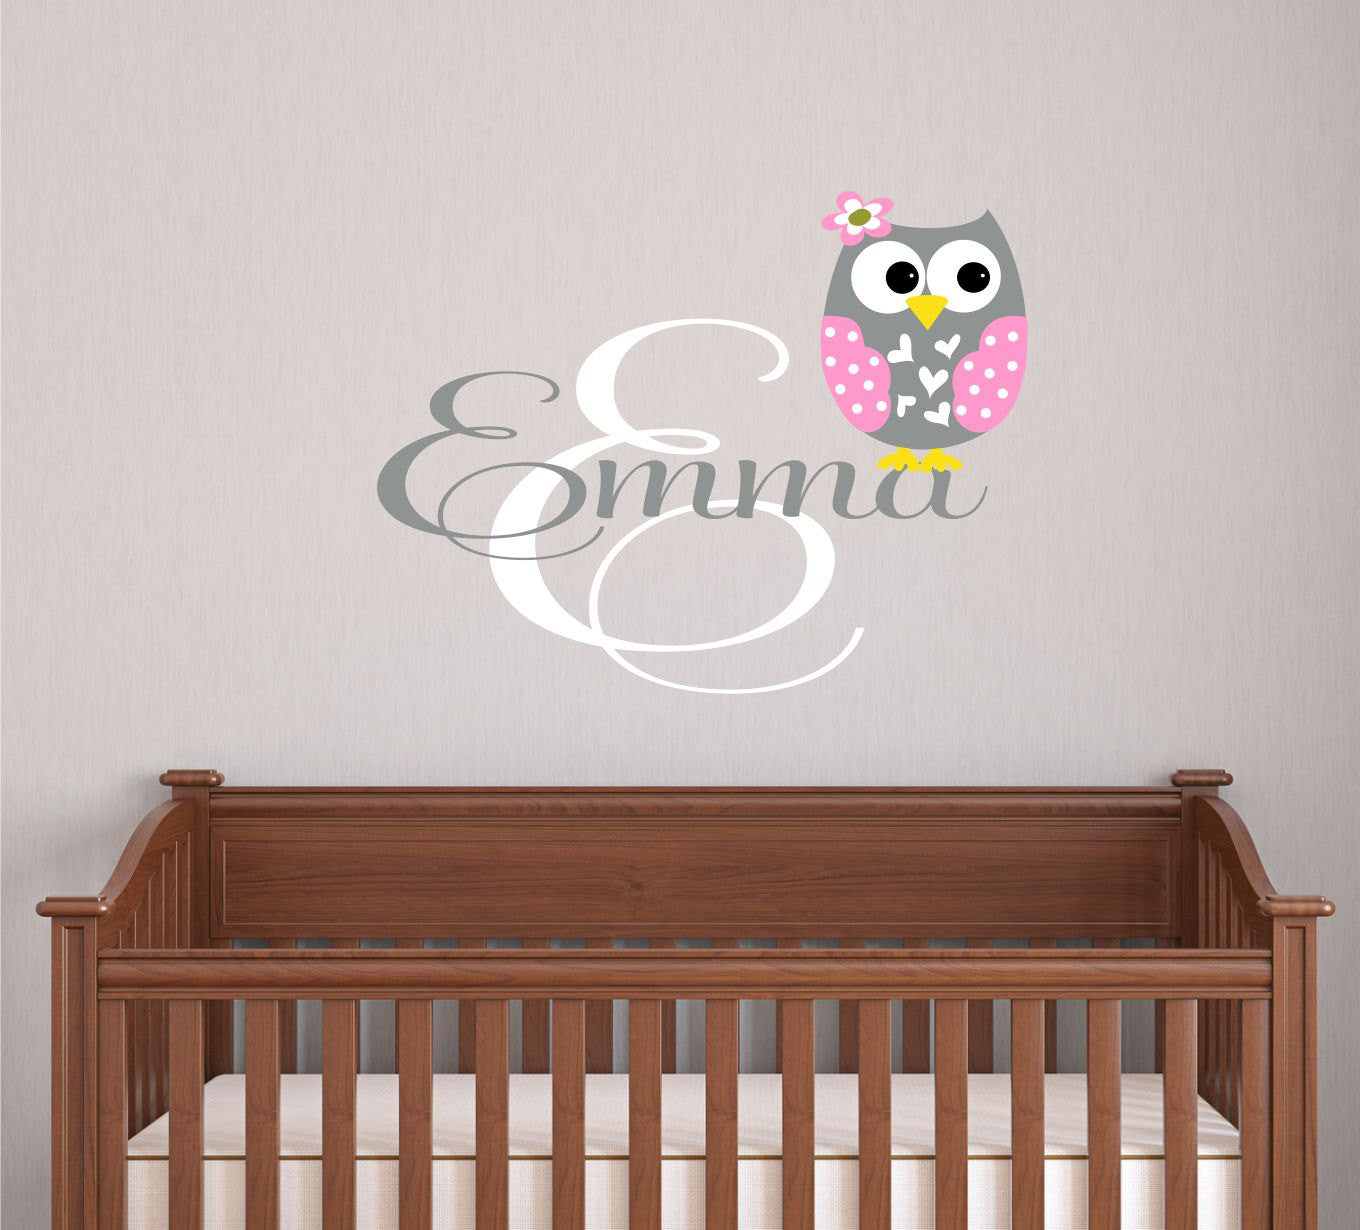 Personalized Owl Wall Decal with Name